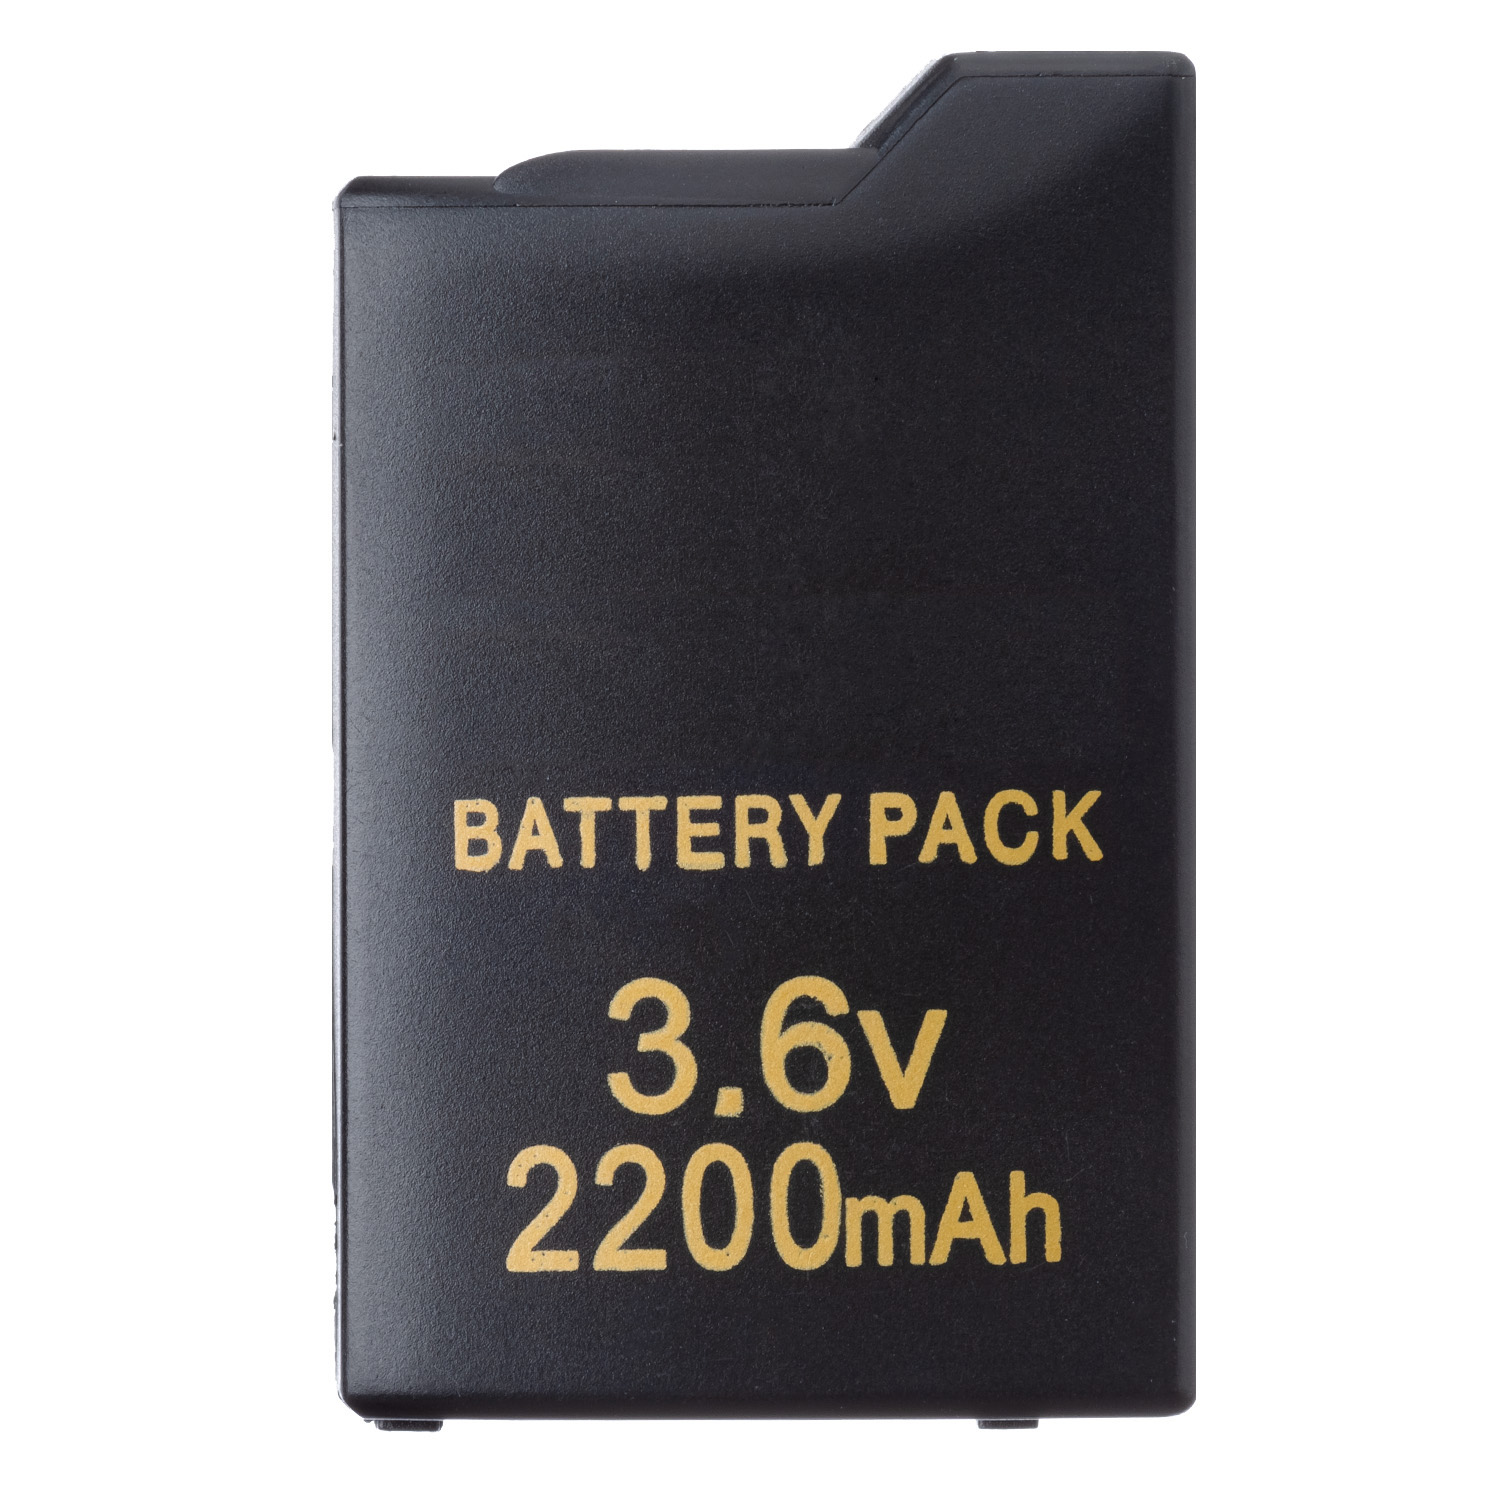 OSTENT 2200mAh 3 6V Rechargeable Battery Pack Replacement for Sony PSP 1000 Console